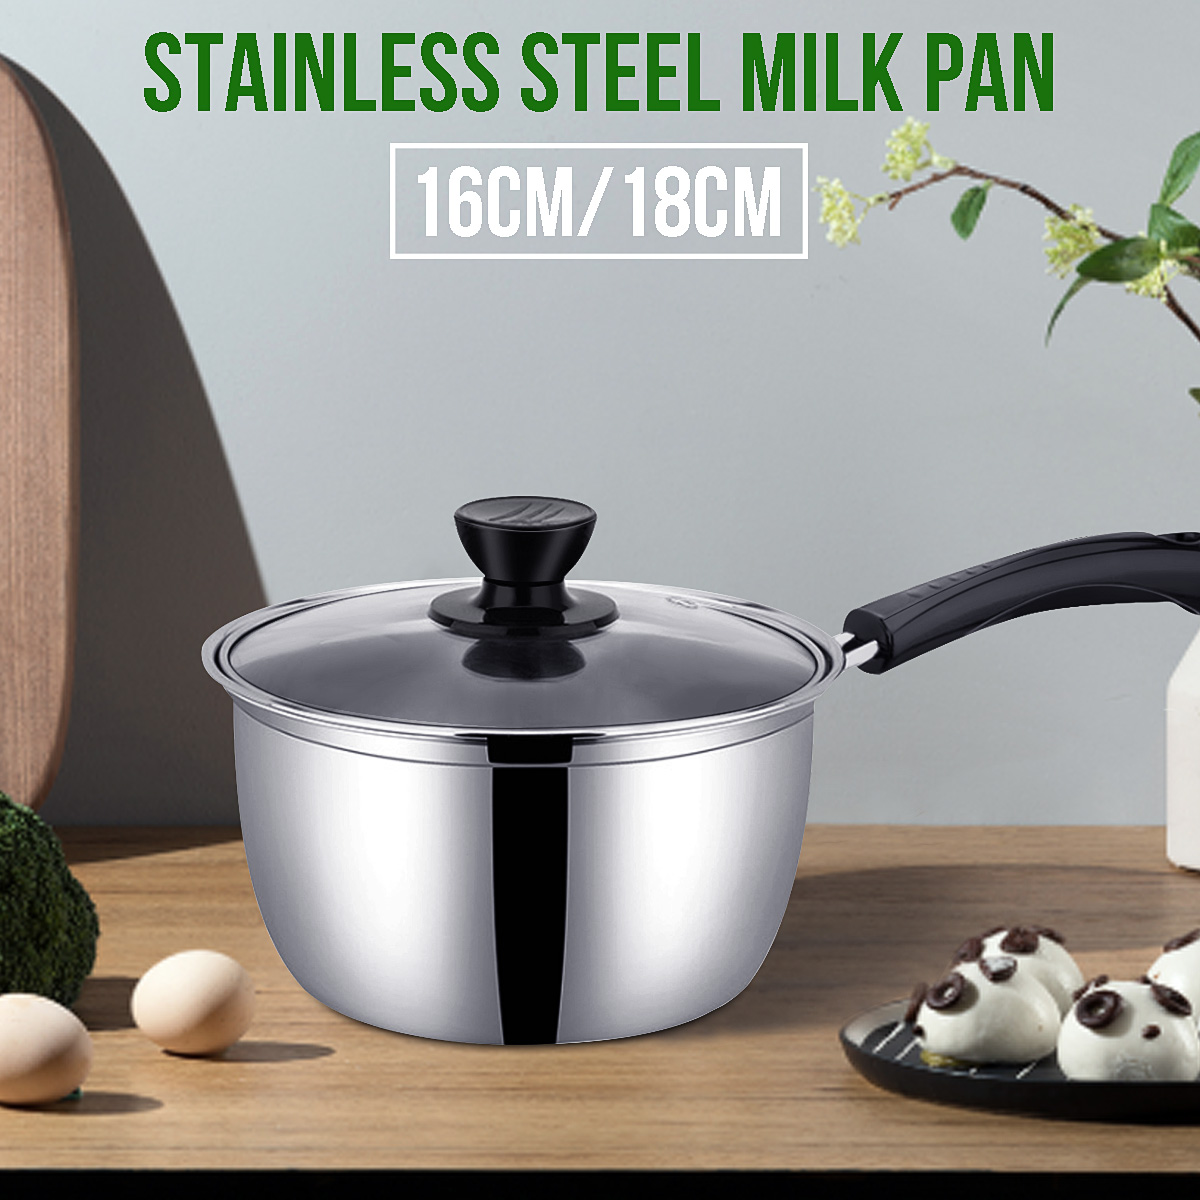 Milk Pan Thickening Non-stick Steam Pot Stainless Steel For Home Kitchenware With Glass Pot Cover 16cm 18cm Cookware Durable